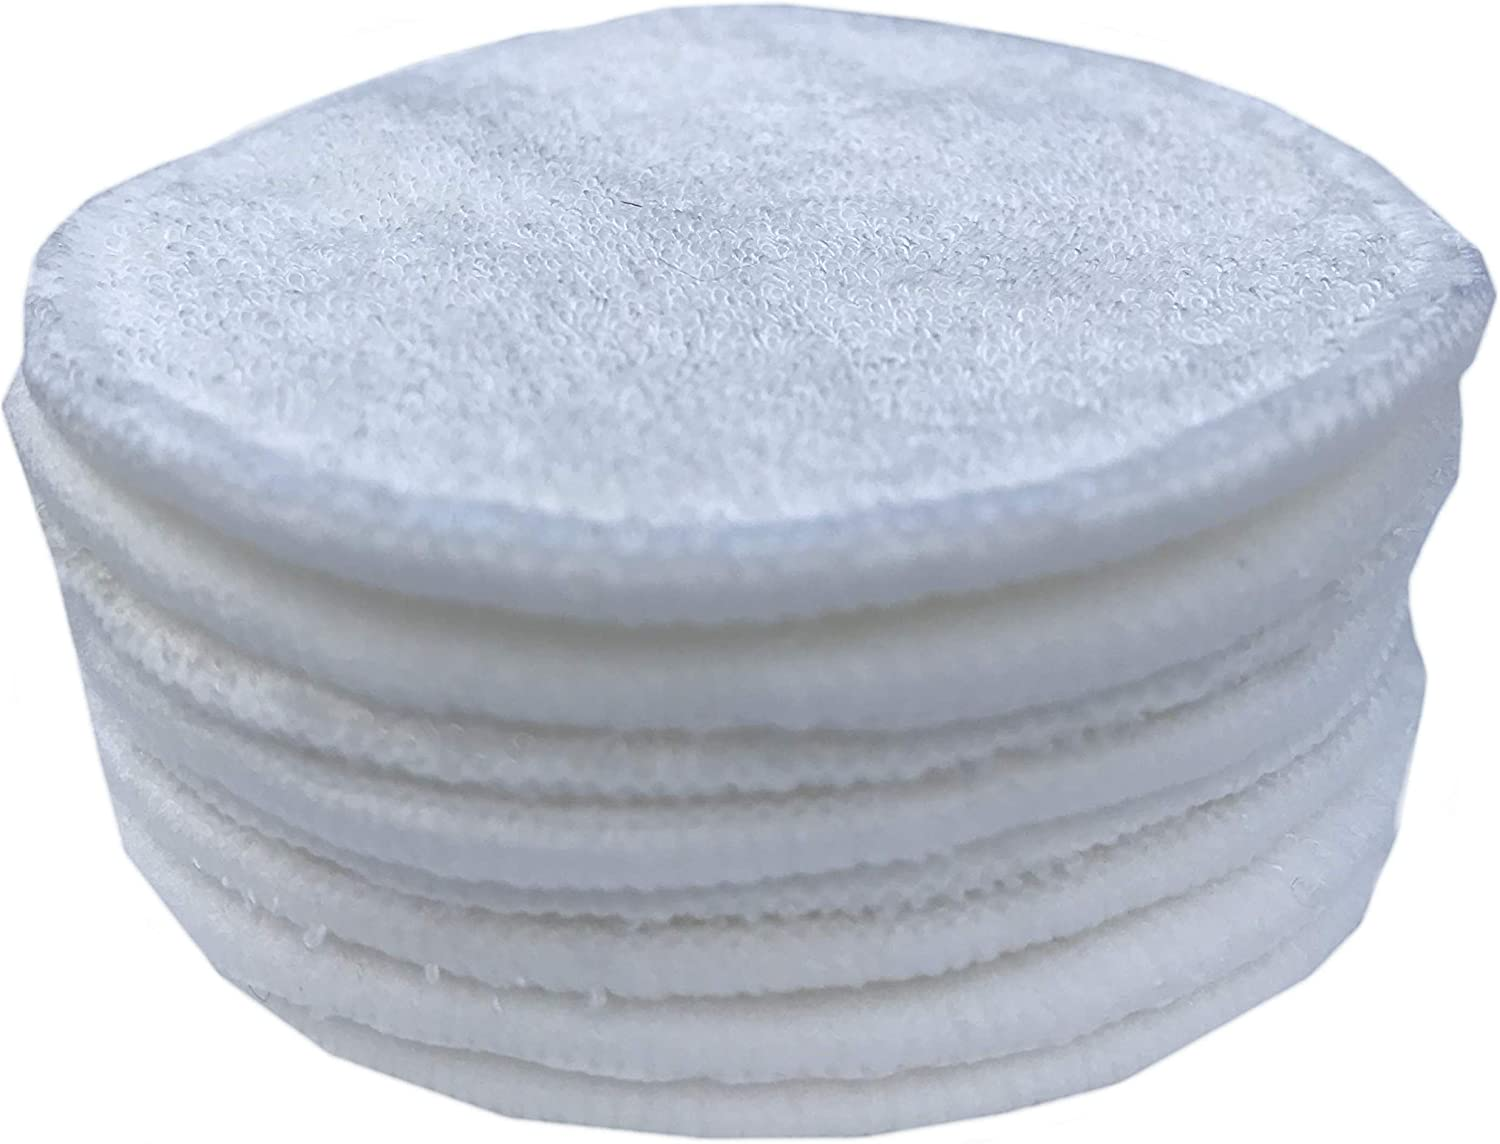 Reusable Make up Remover Pads 16 Bamboo Fibre Round Washable Face Facial Cleansing Wipes including Laundry Bag